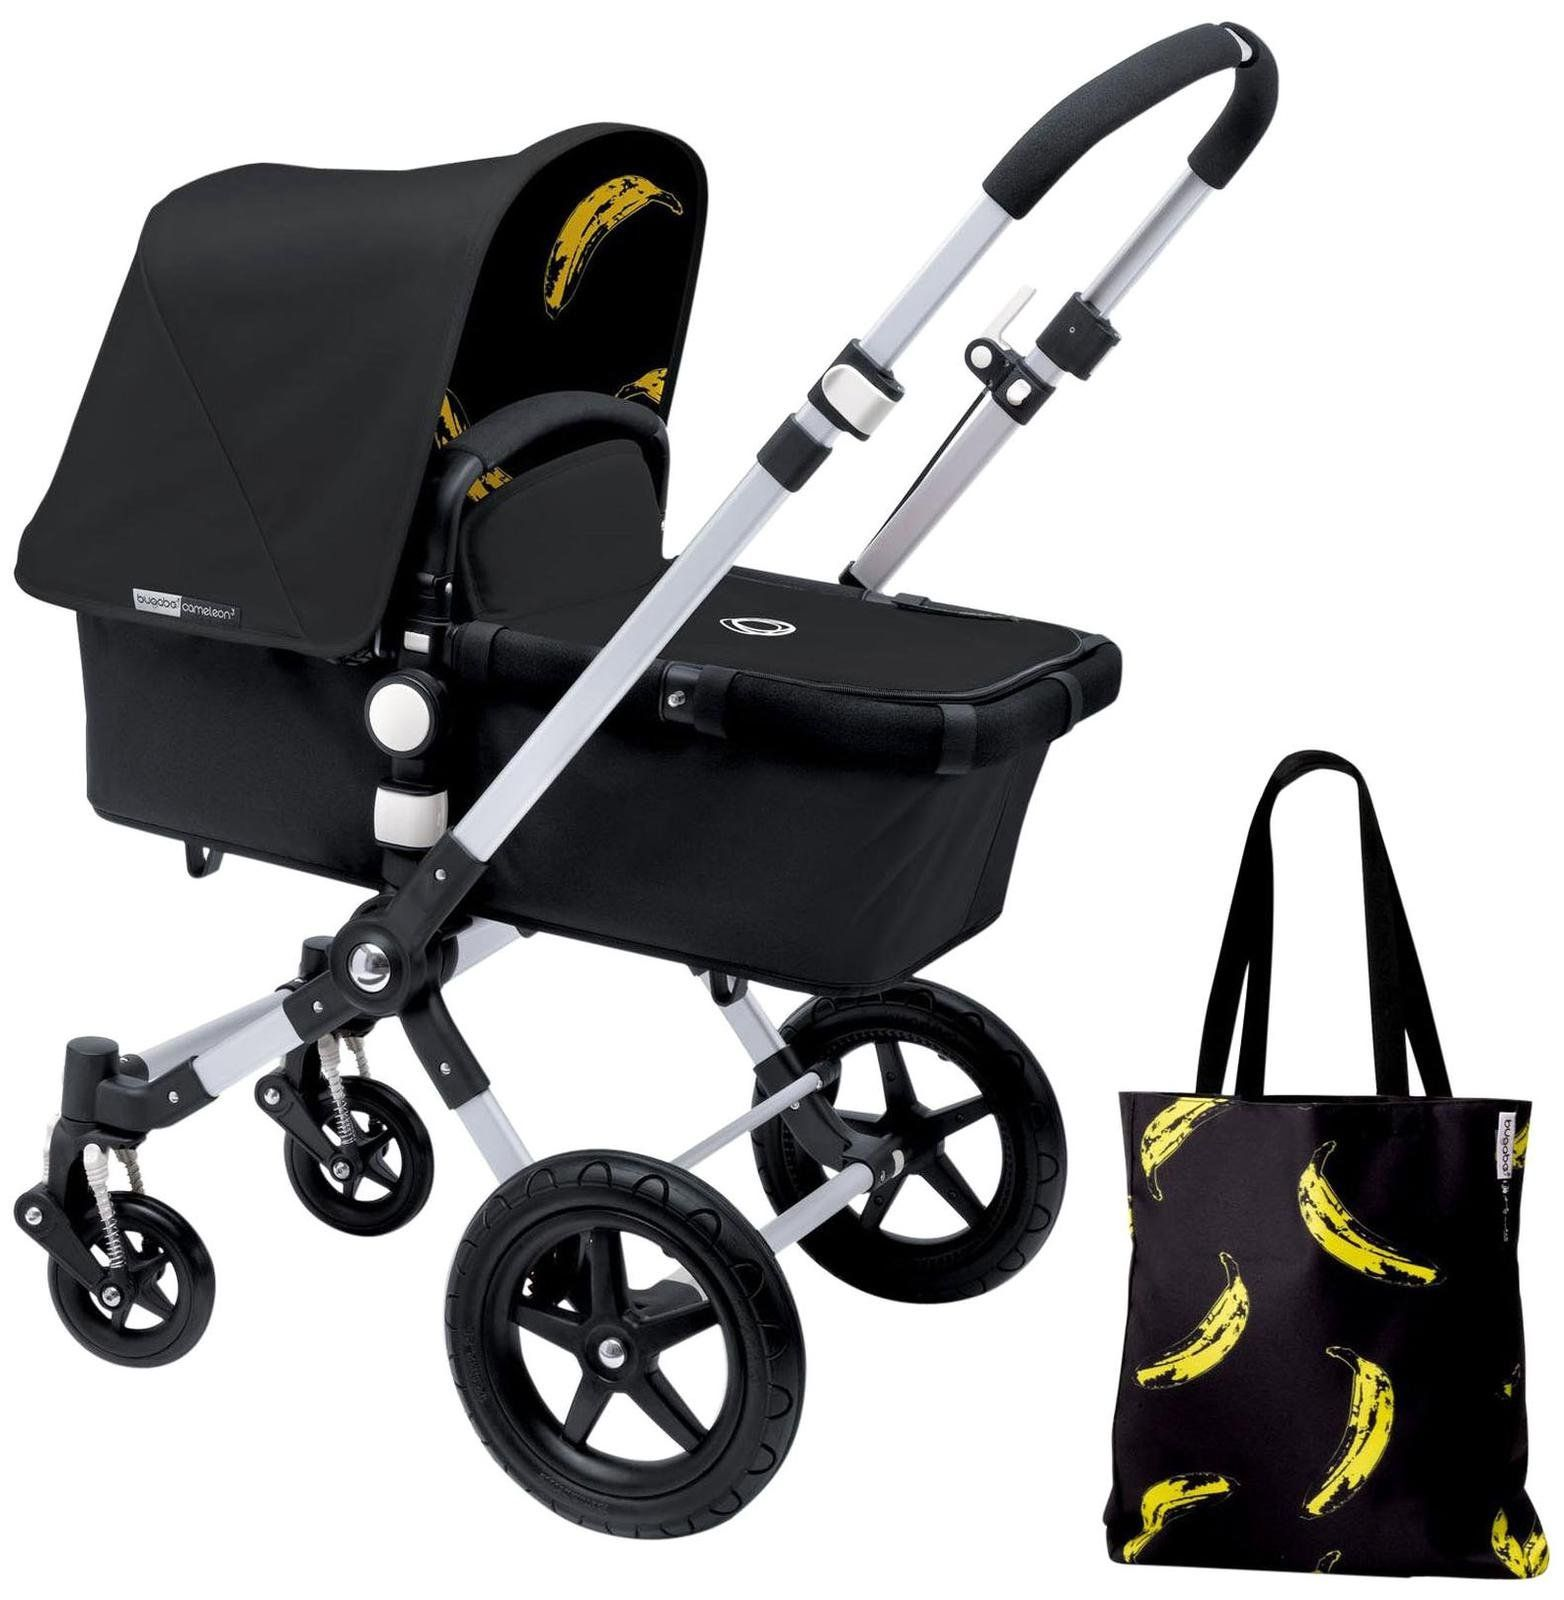 Bugaboo Cameleon3 Complete Stroller 2015 Andy Warhol